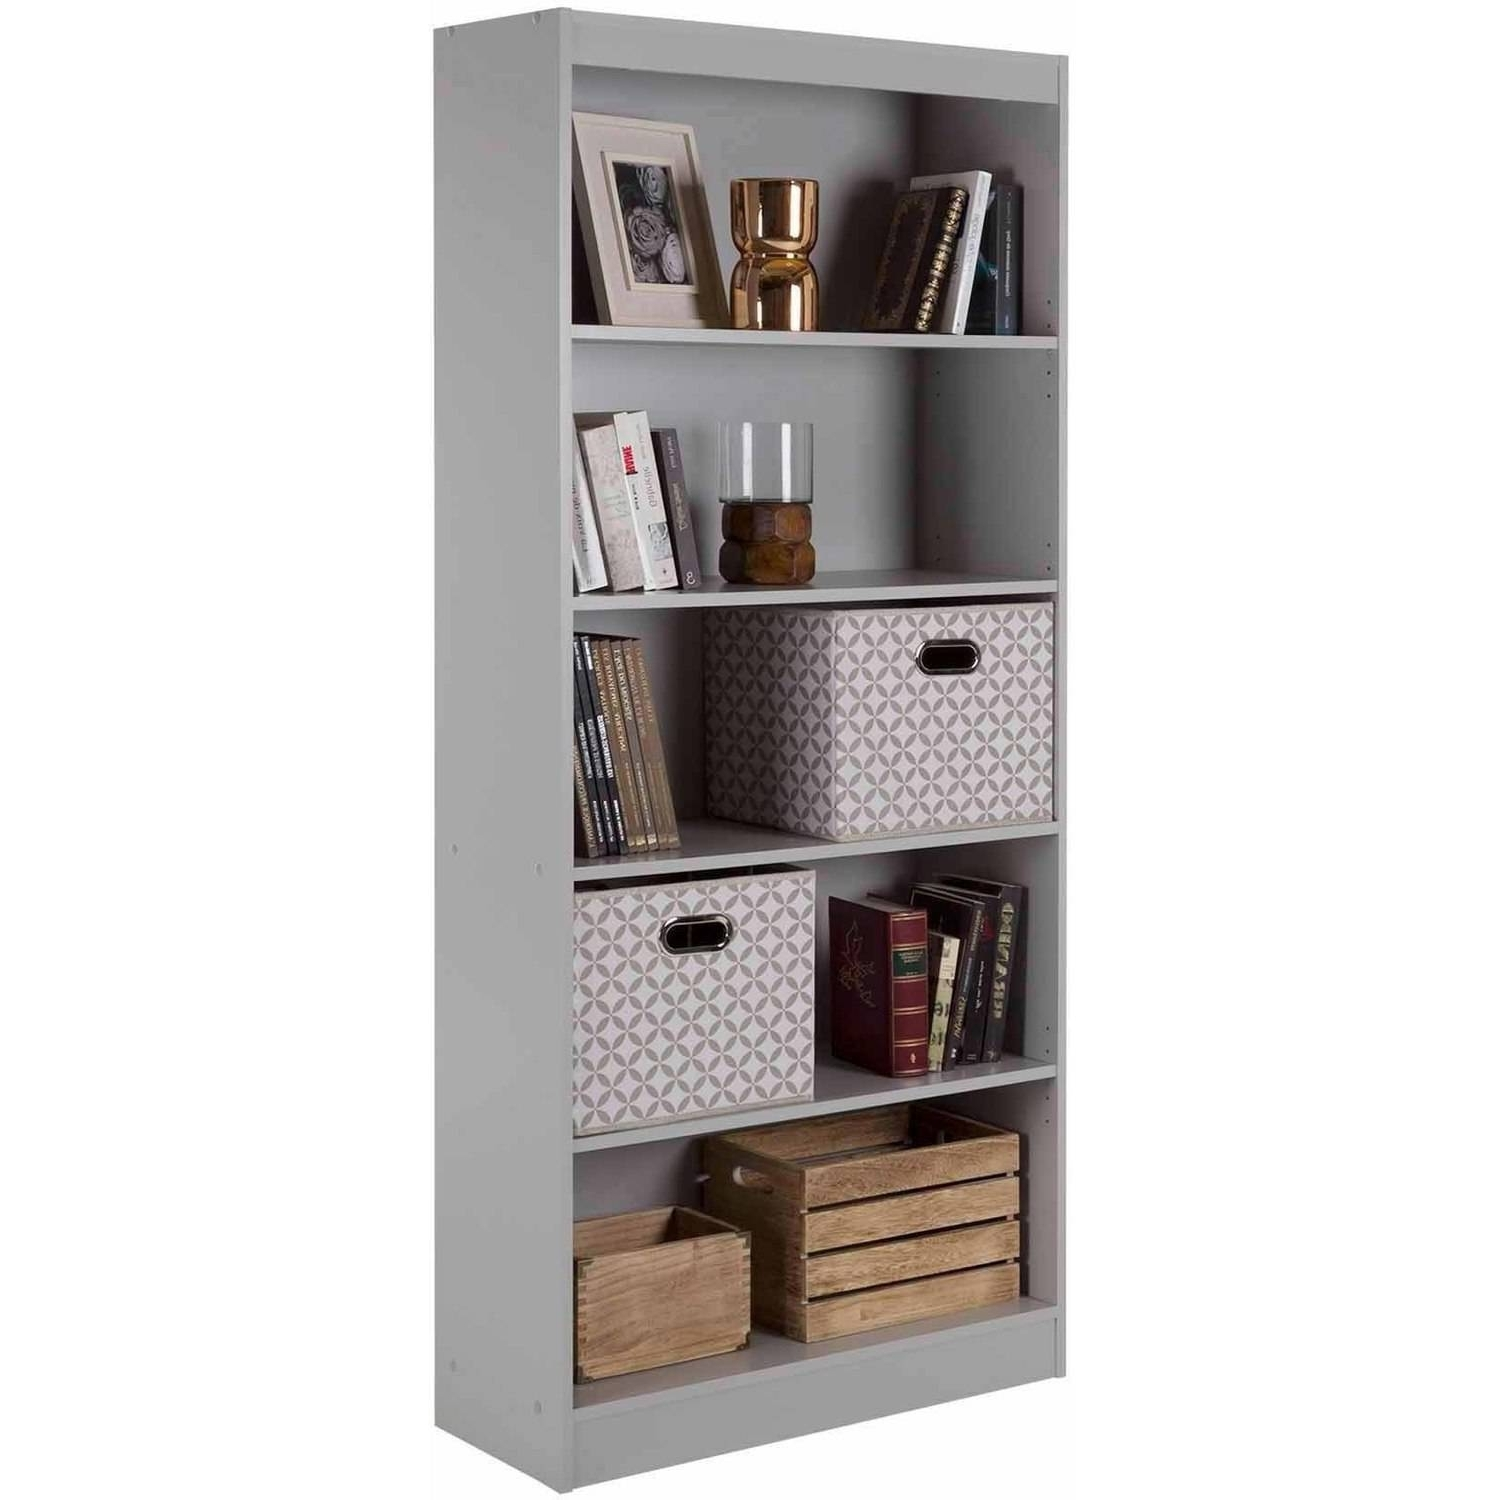 South Shore 5 Shelf Bookcases Within Well Known 5 Shelf Bookcase Black White Gray Brown Storage Bookshelf Wood (View 12 of 15)